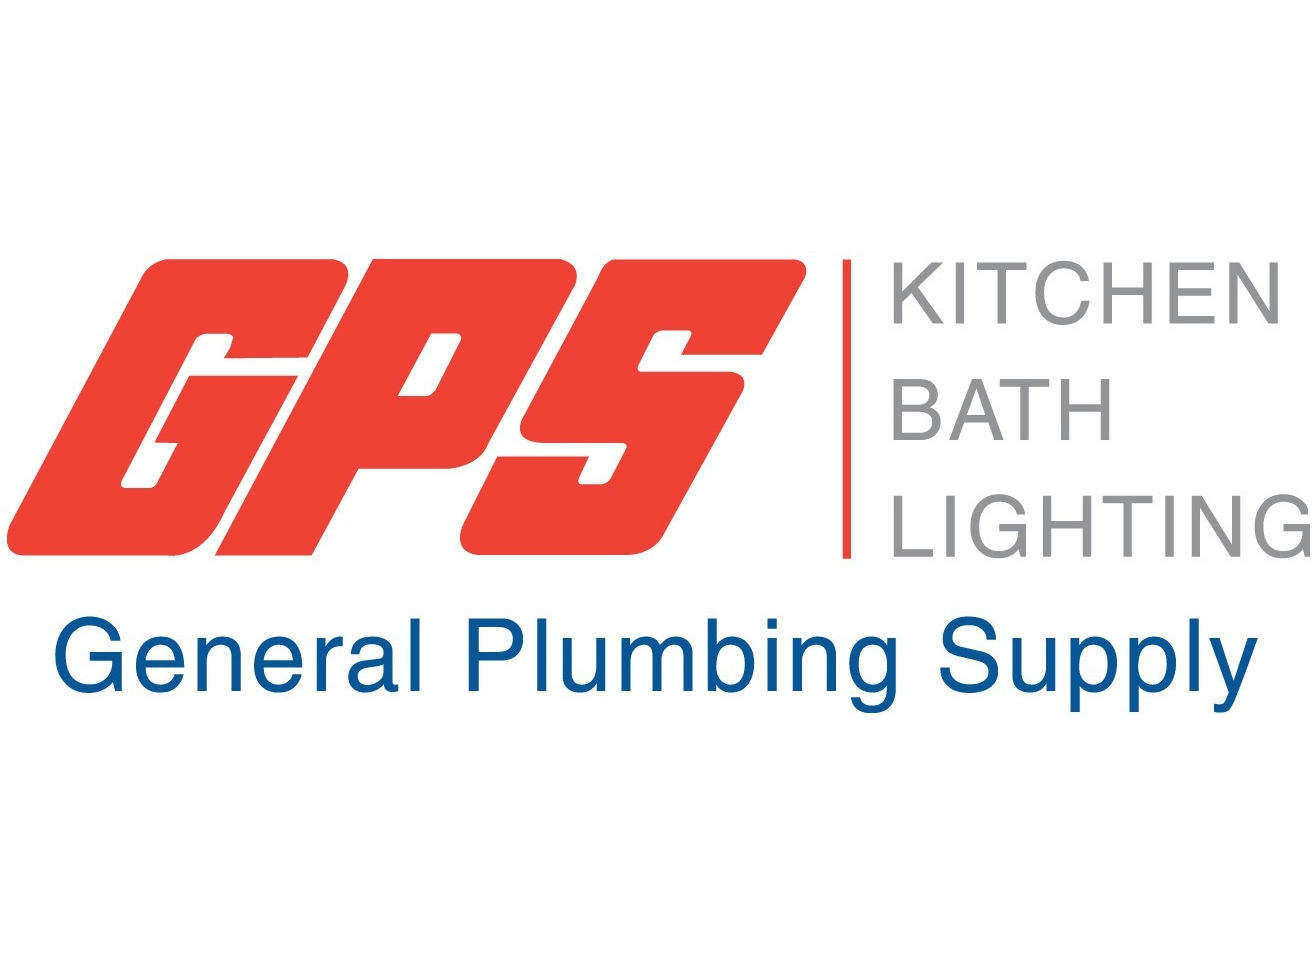 Kohler Kitchen Bathroom Products At General Plumbing Supply In